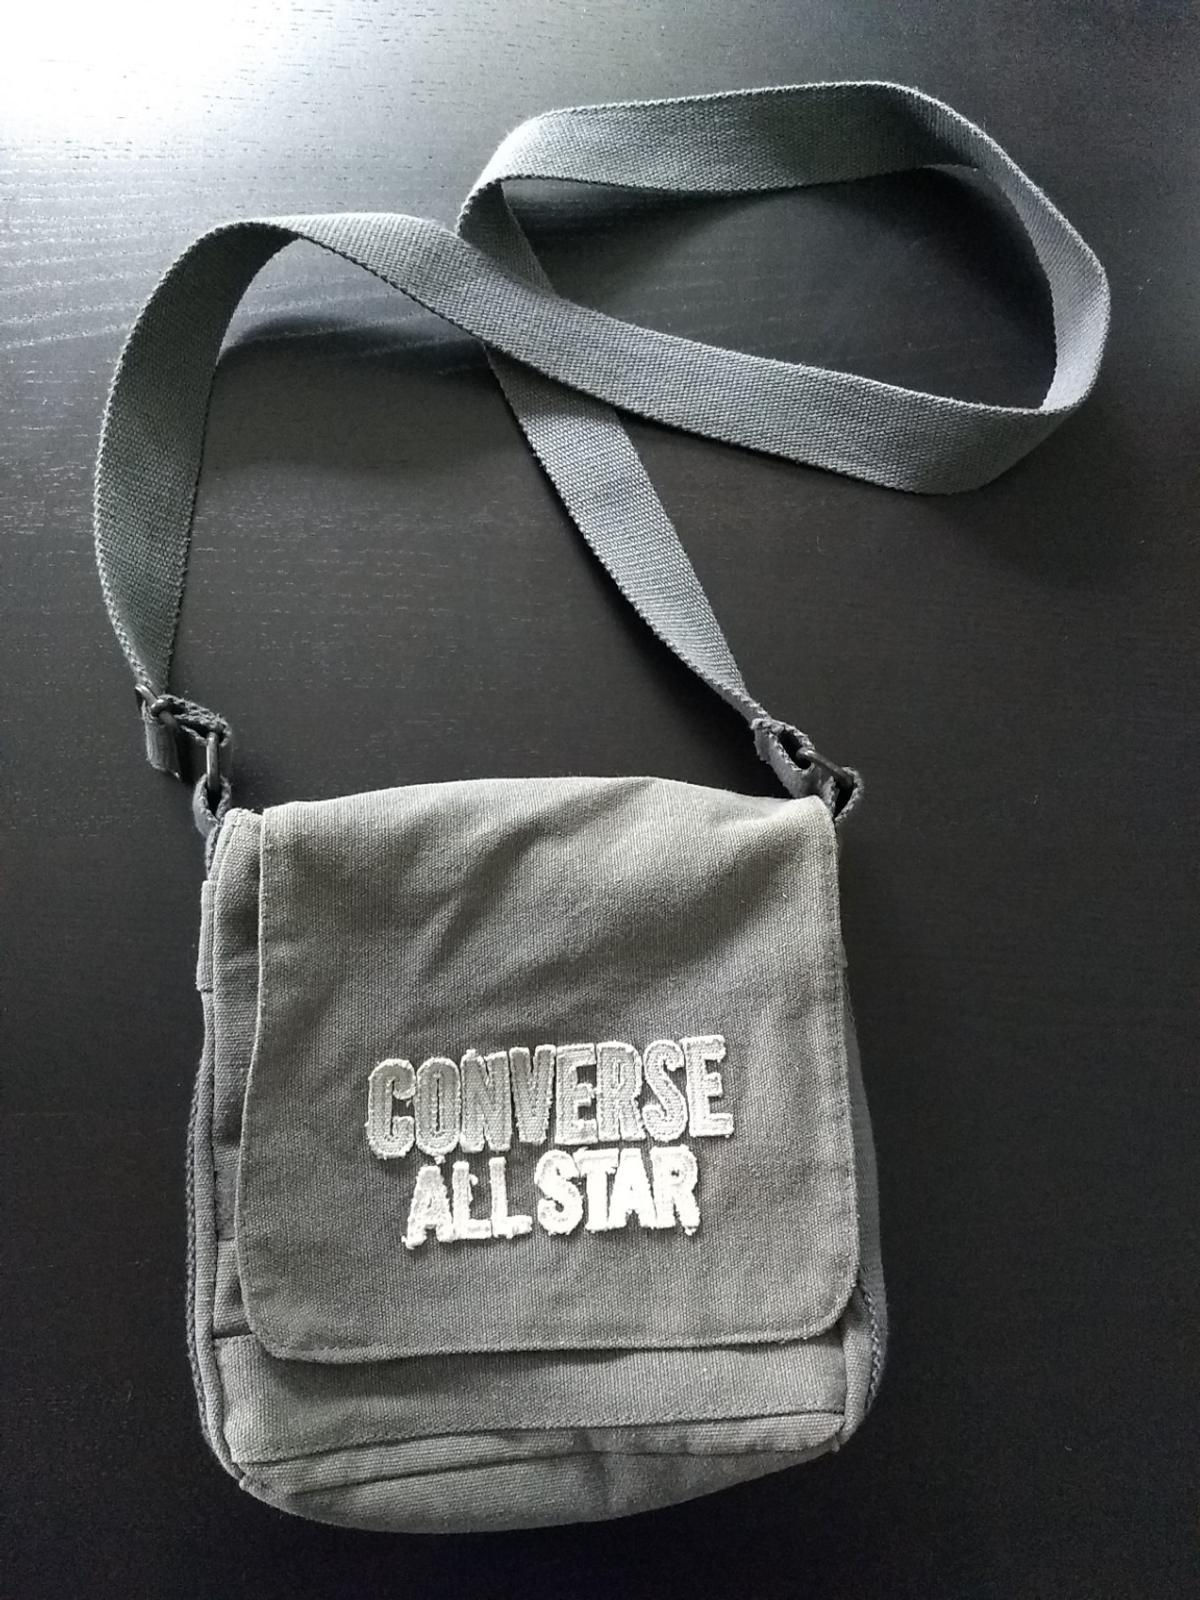 Converse All Star Tasche in 81379 München for €20.00 for